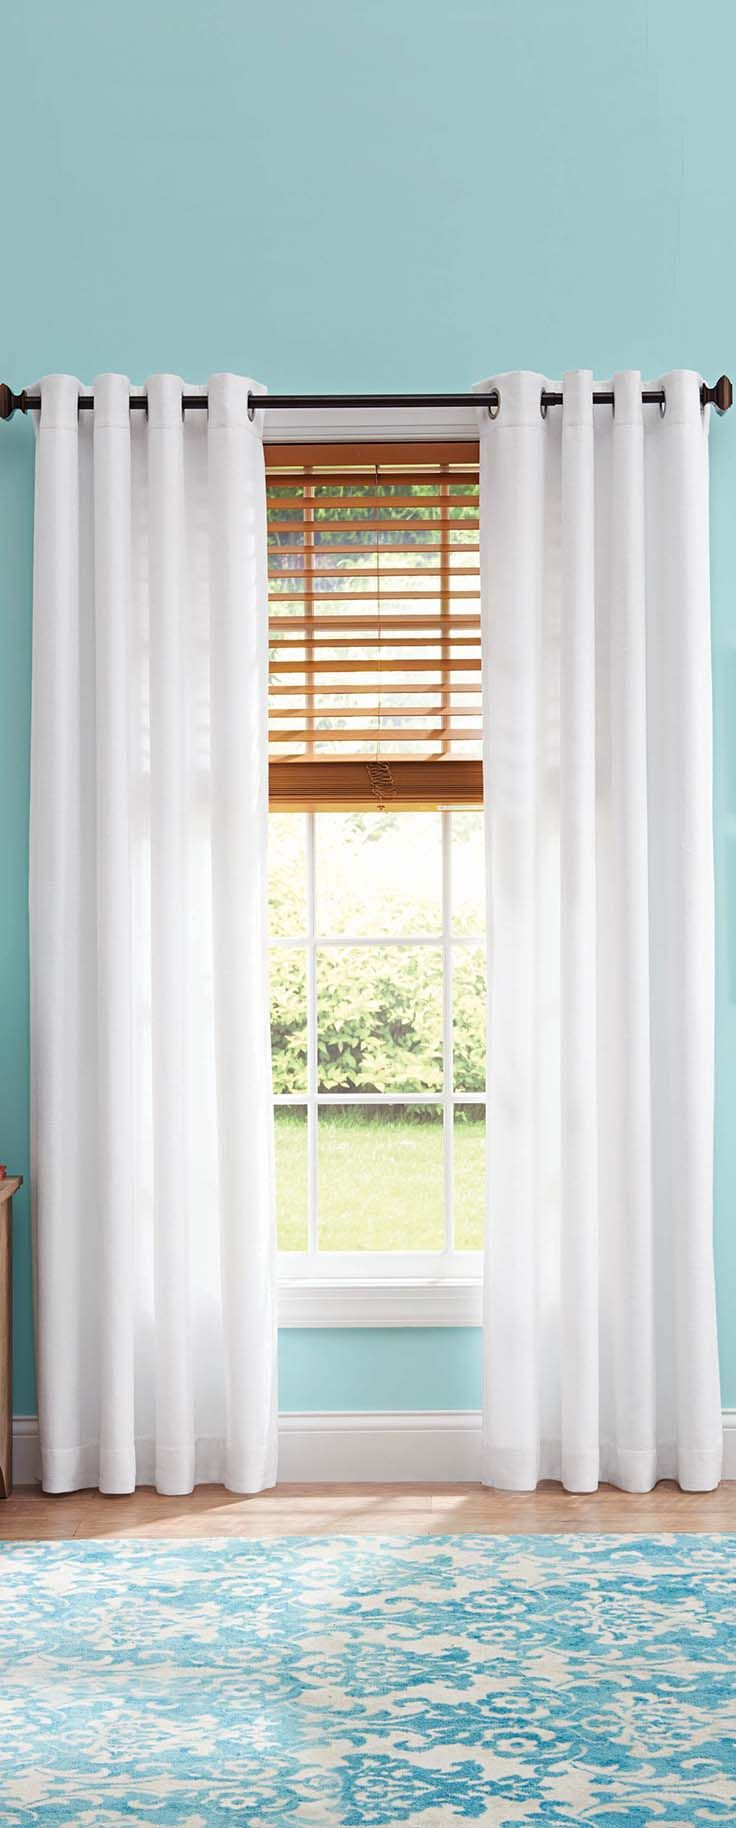 15 Best Windows That Wow Images On Pinterest Better Homes And Gardens Curtain Panels And